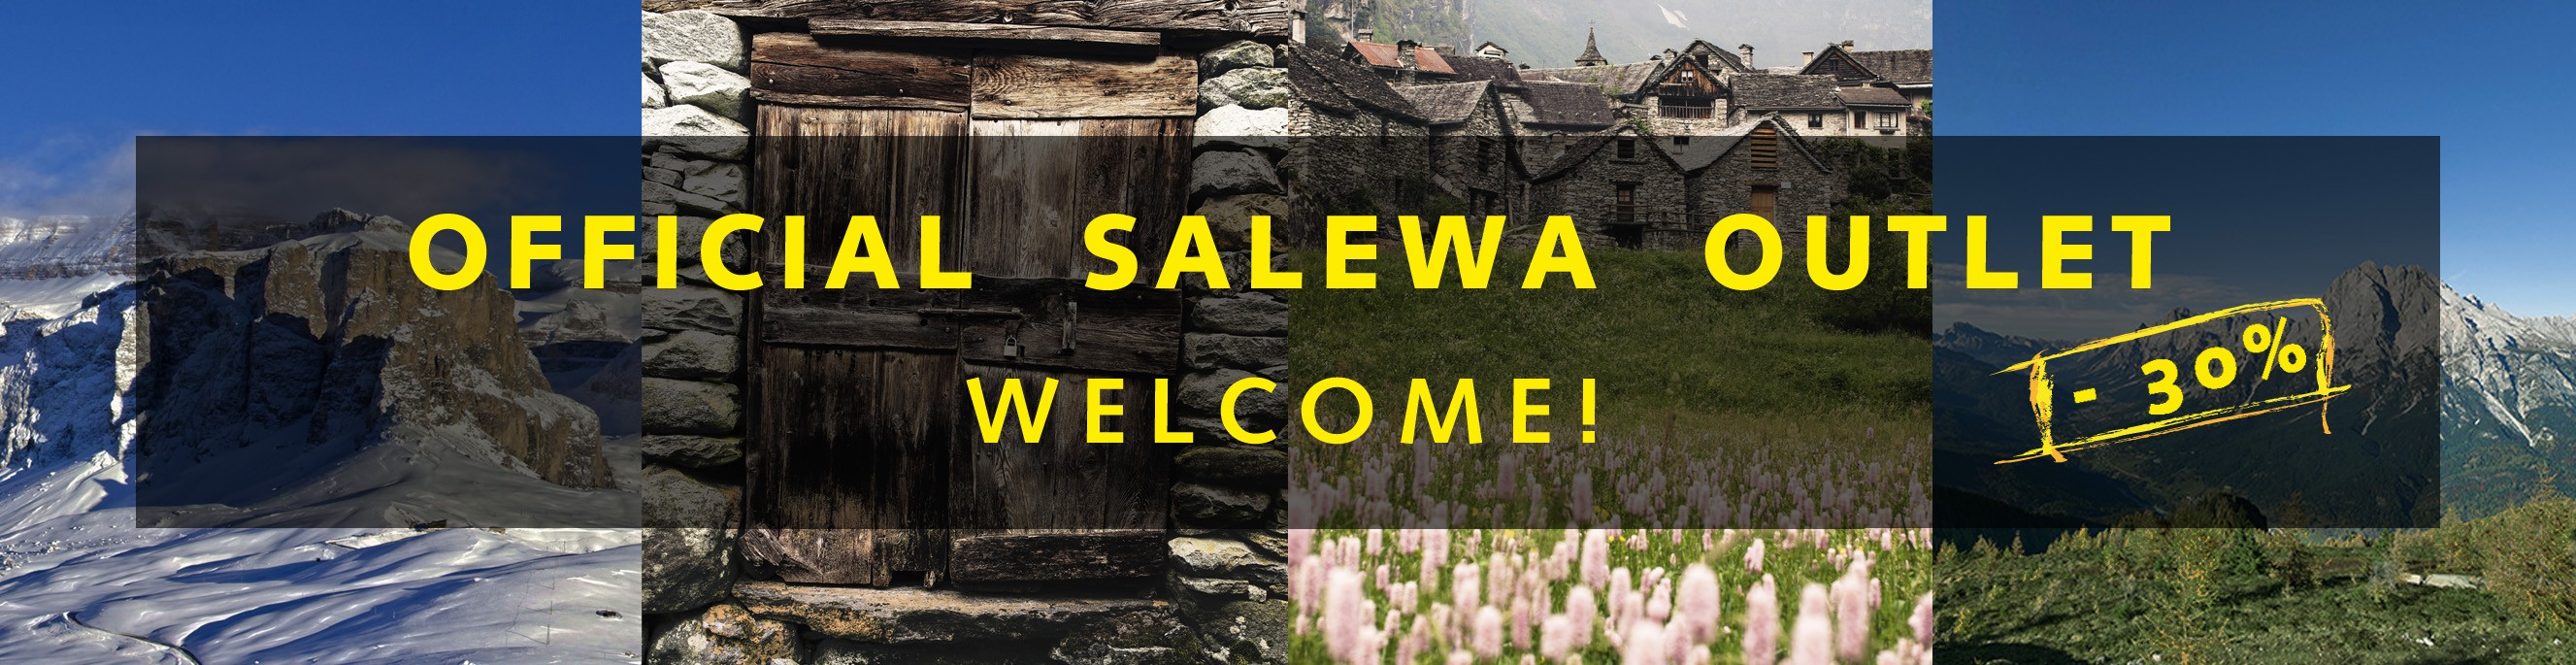 Official Salewa Outlet -30%